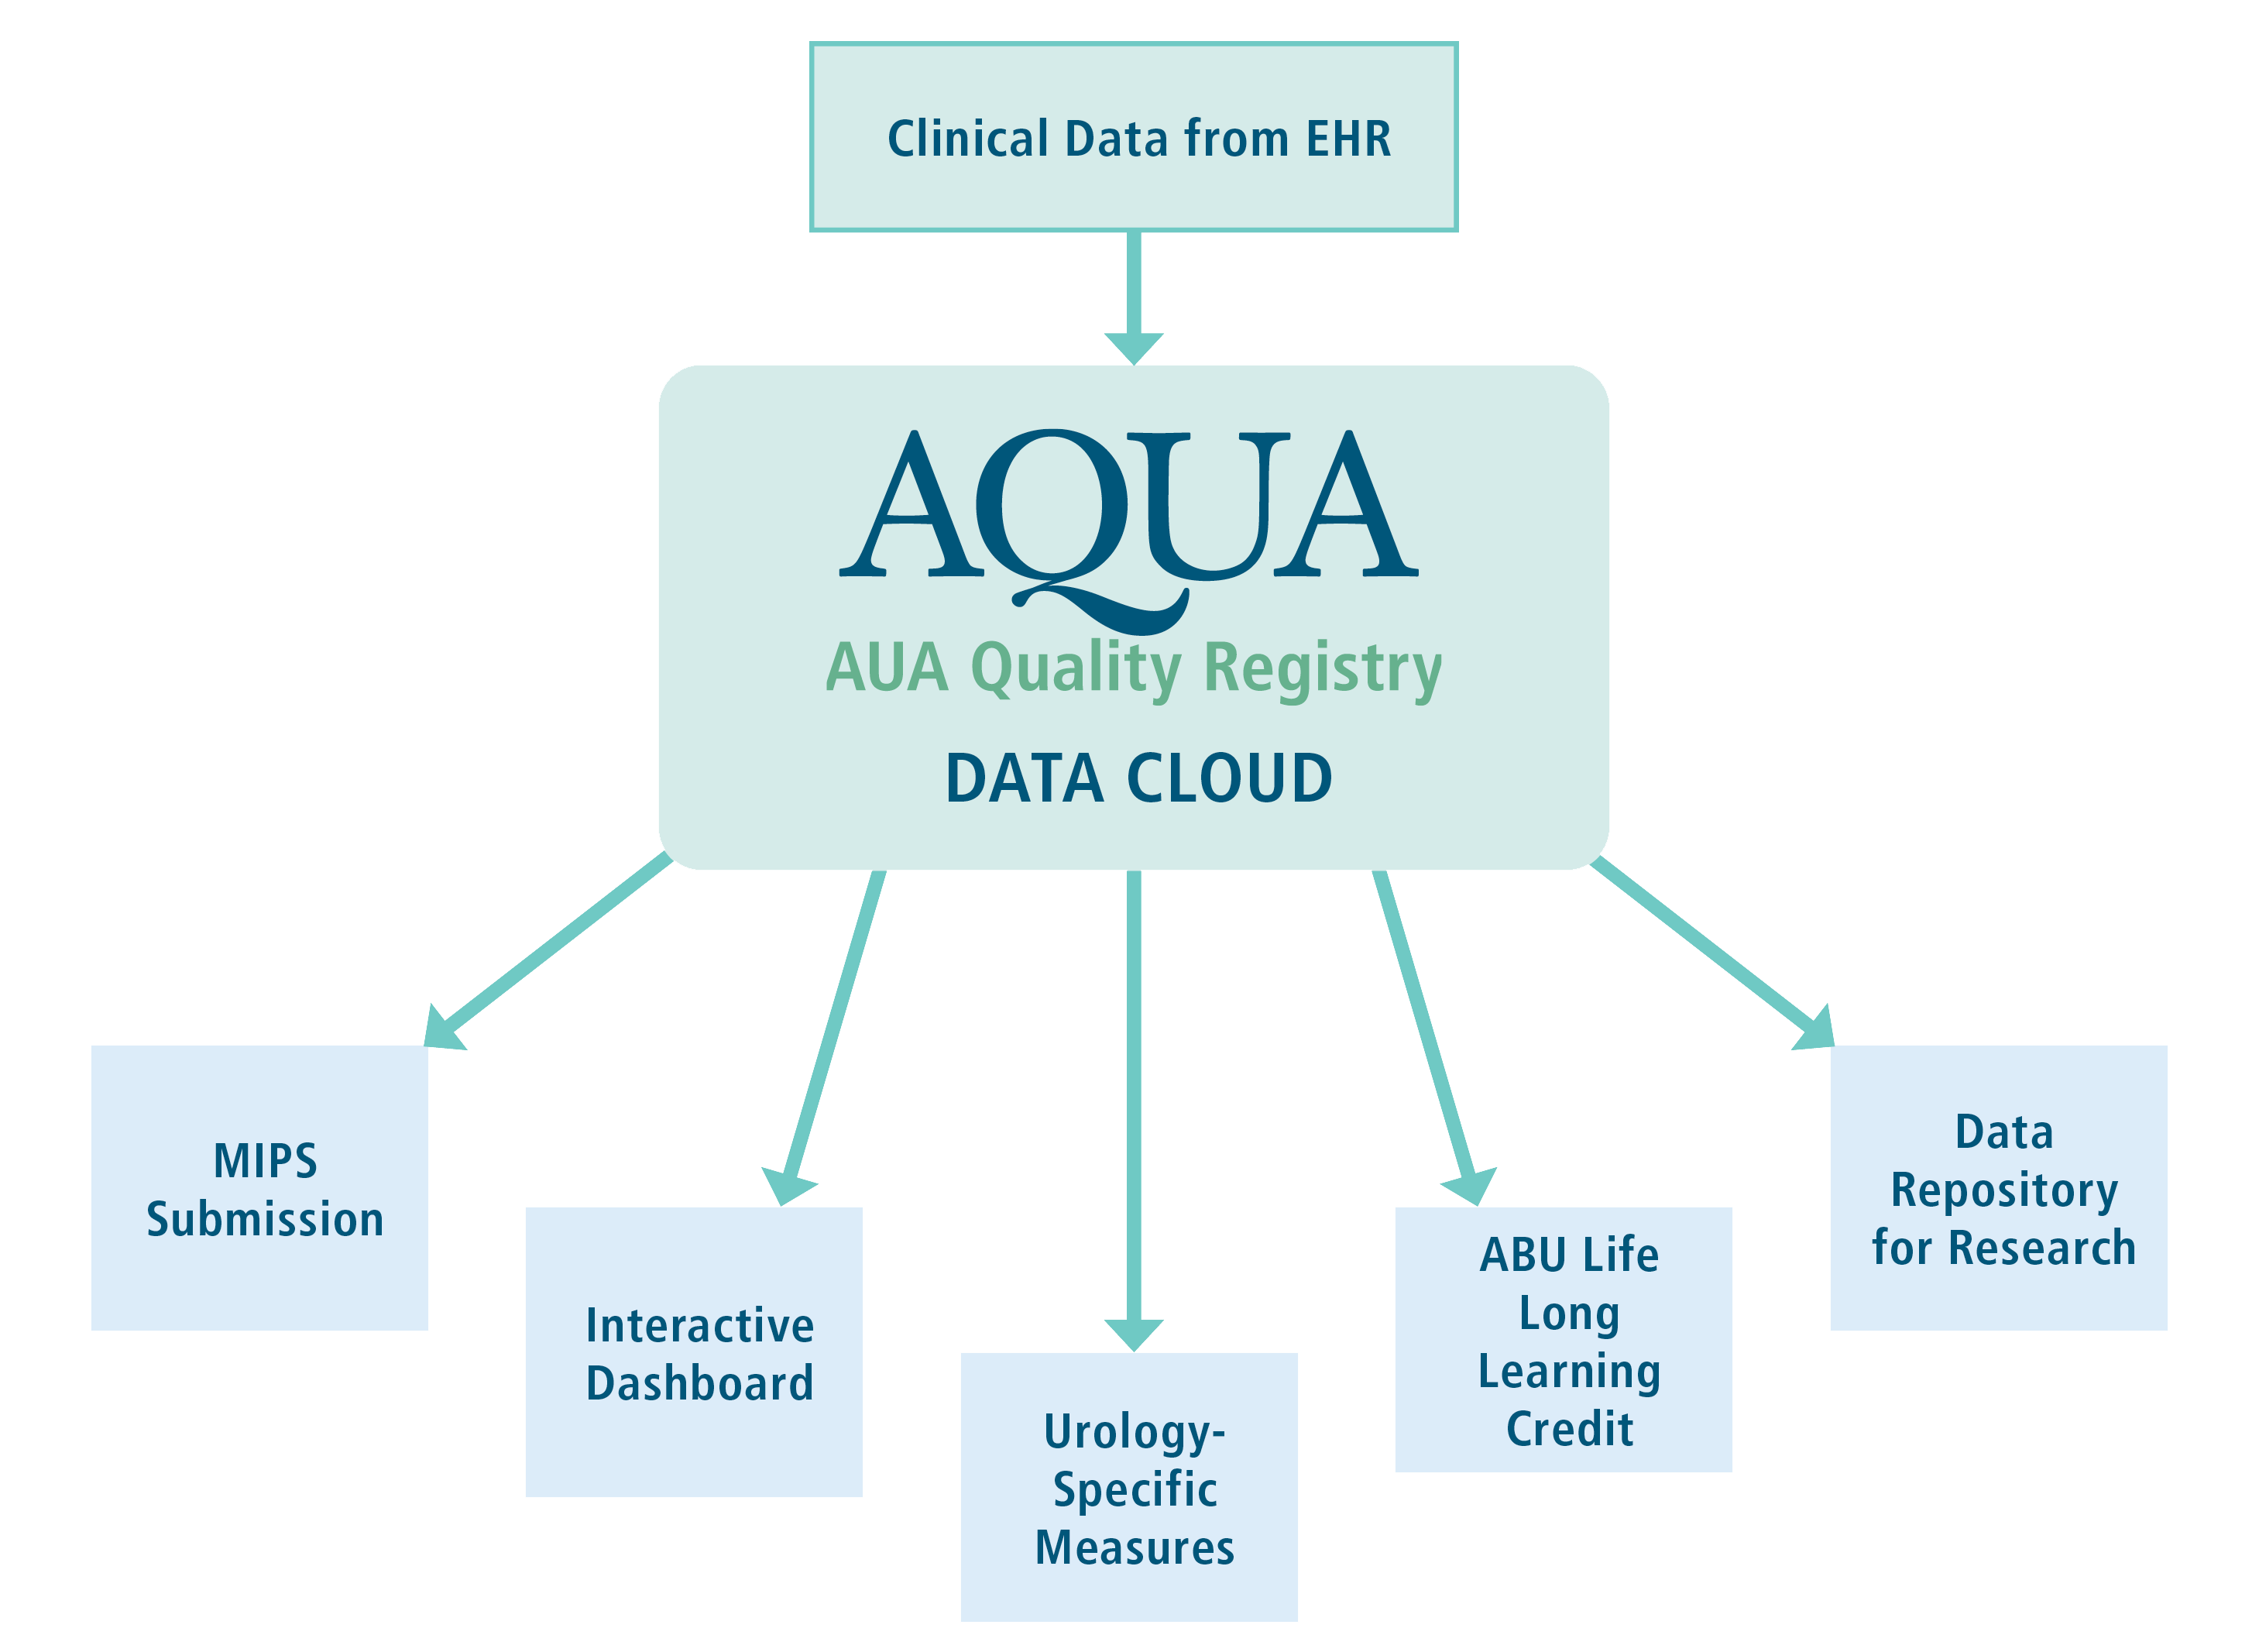 AQUA Data Cloud